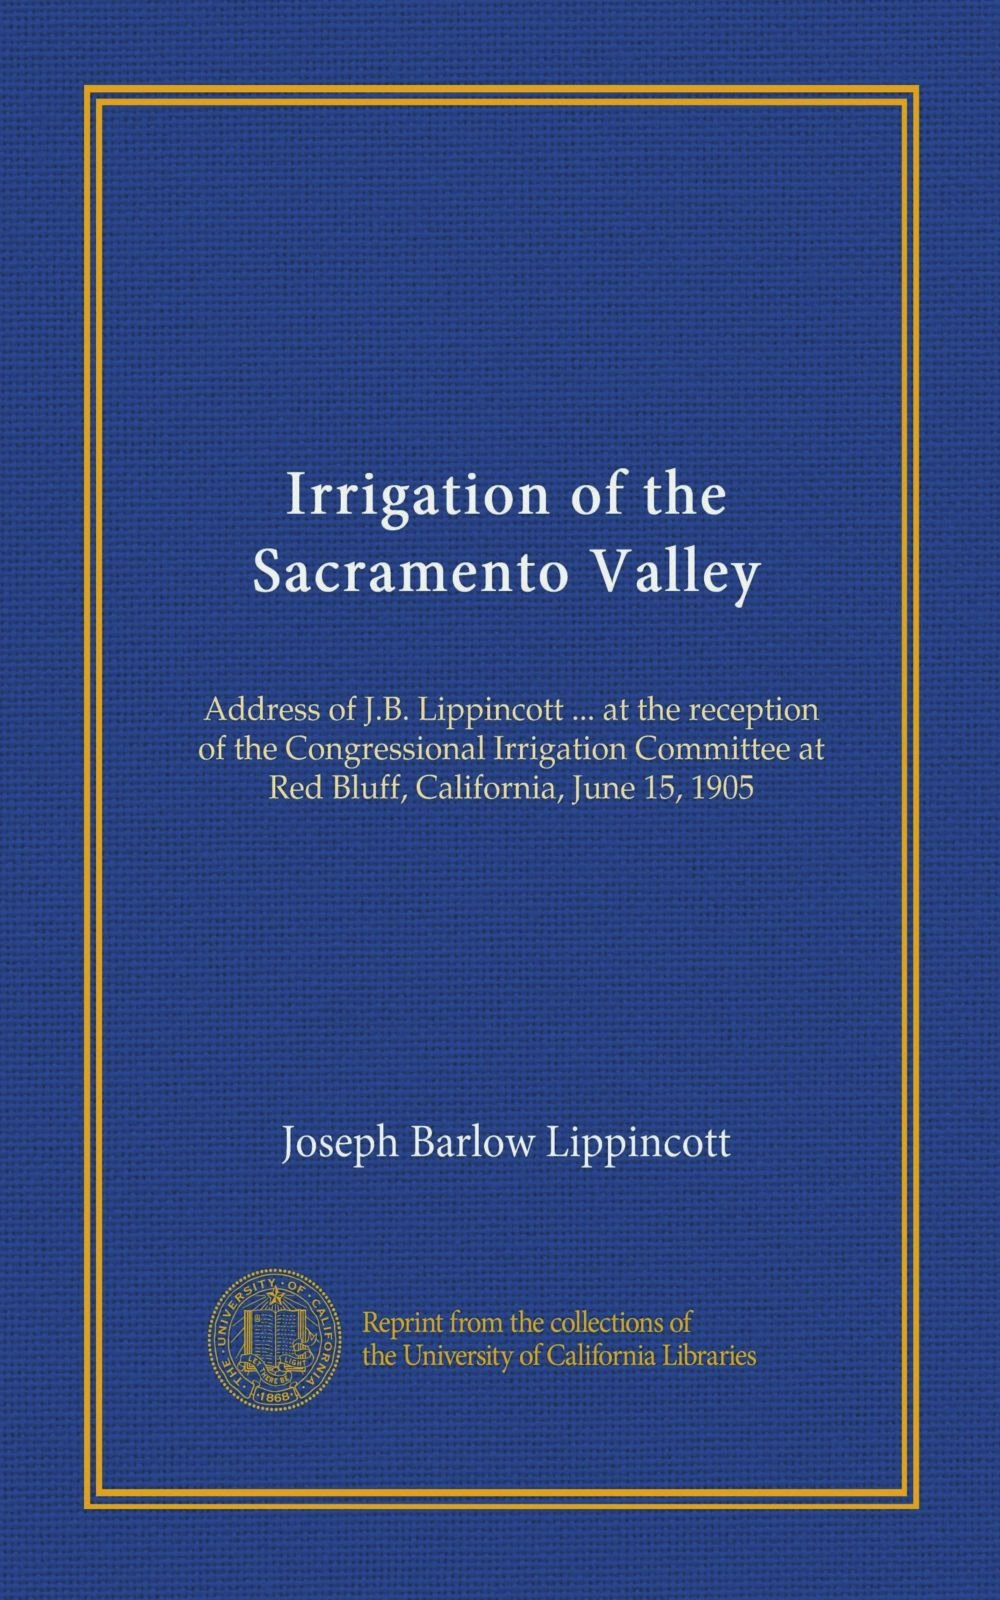 Irrigation of the Sacramento Valley: Address of J.B. Lippincott ... at the reception of the Congressional Irrigation Committee at Red Bluff, California, June 15, 1905